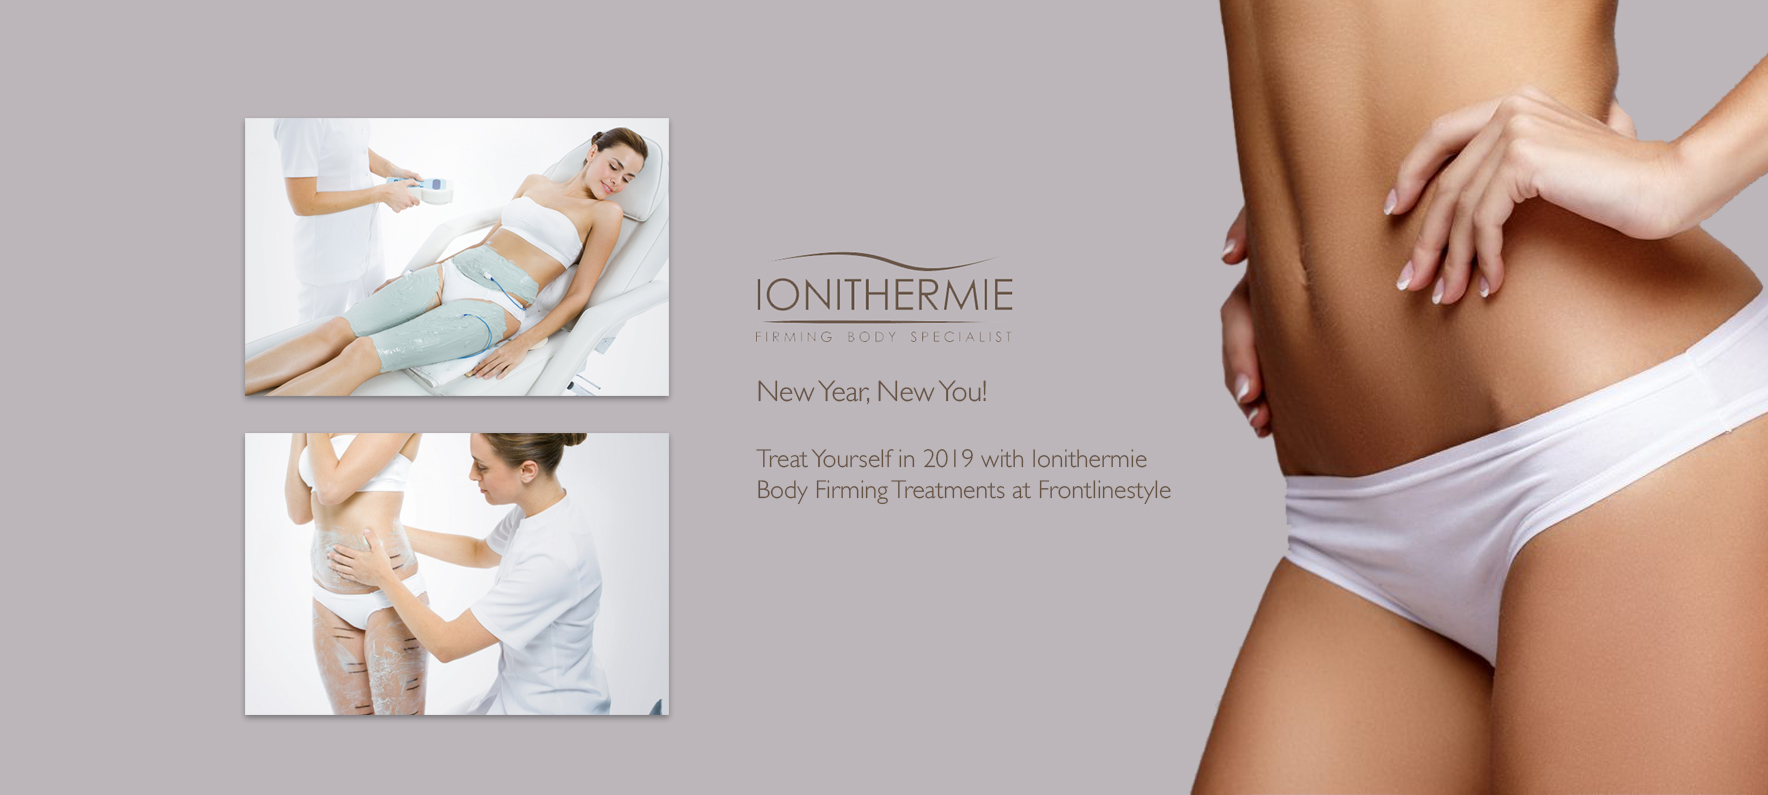 Ionithermie New Year New You Firming Treatment Lilac Banner 2019